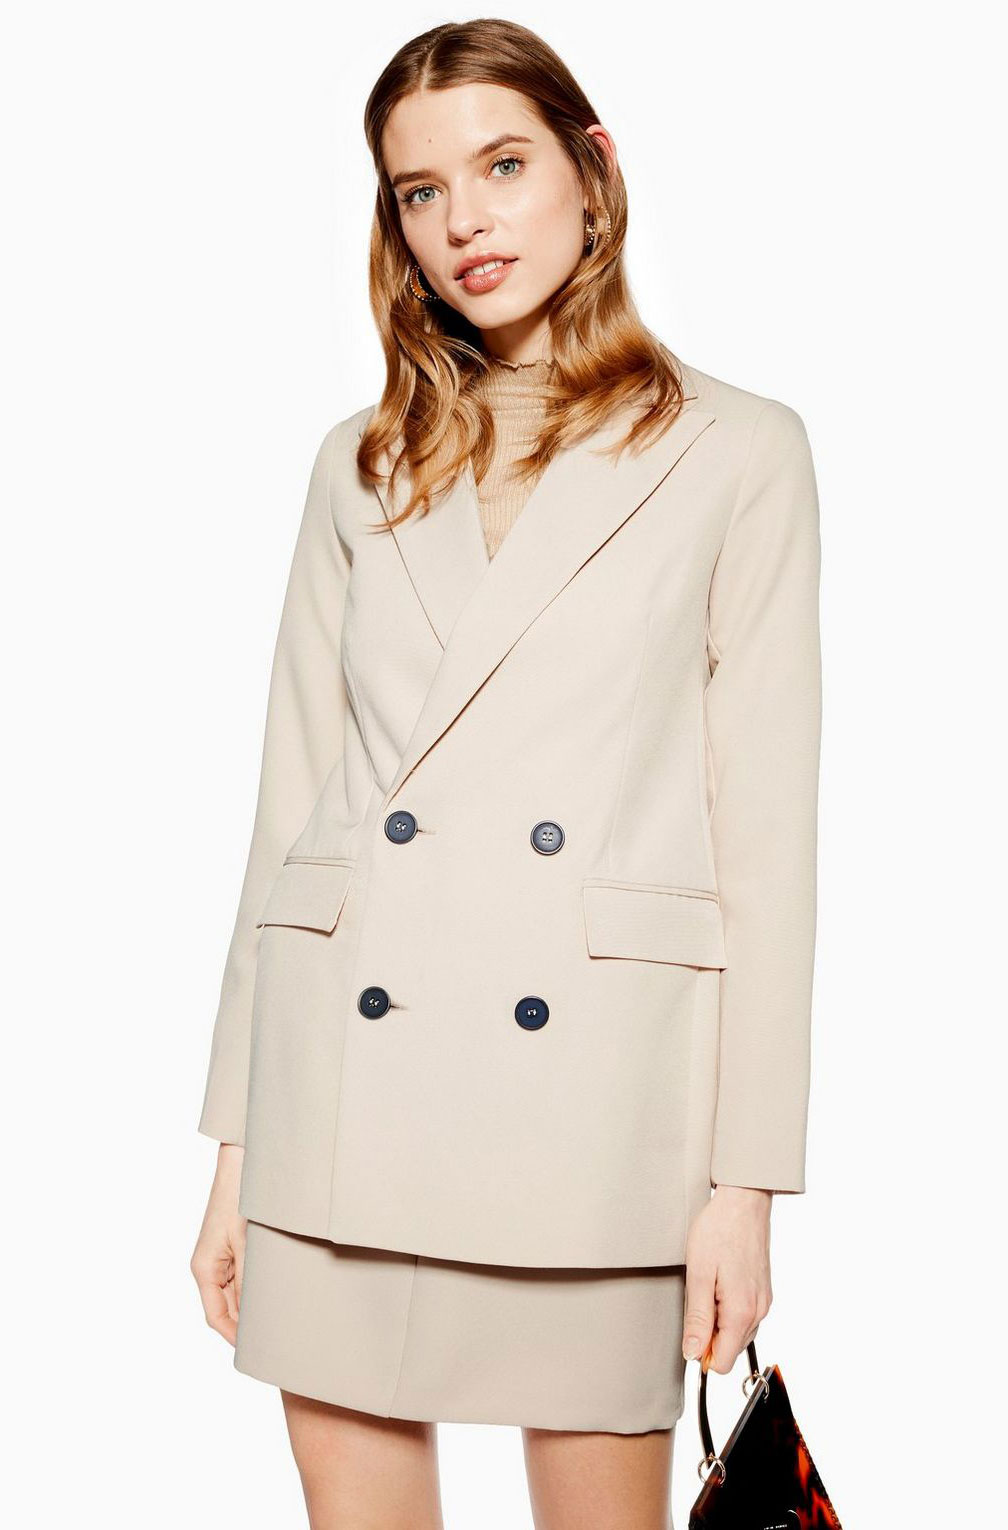 Top Shop Neutral Suit  $165